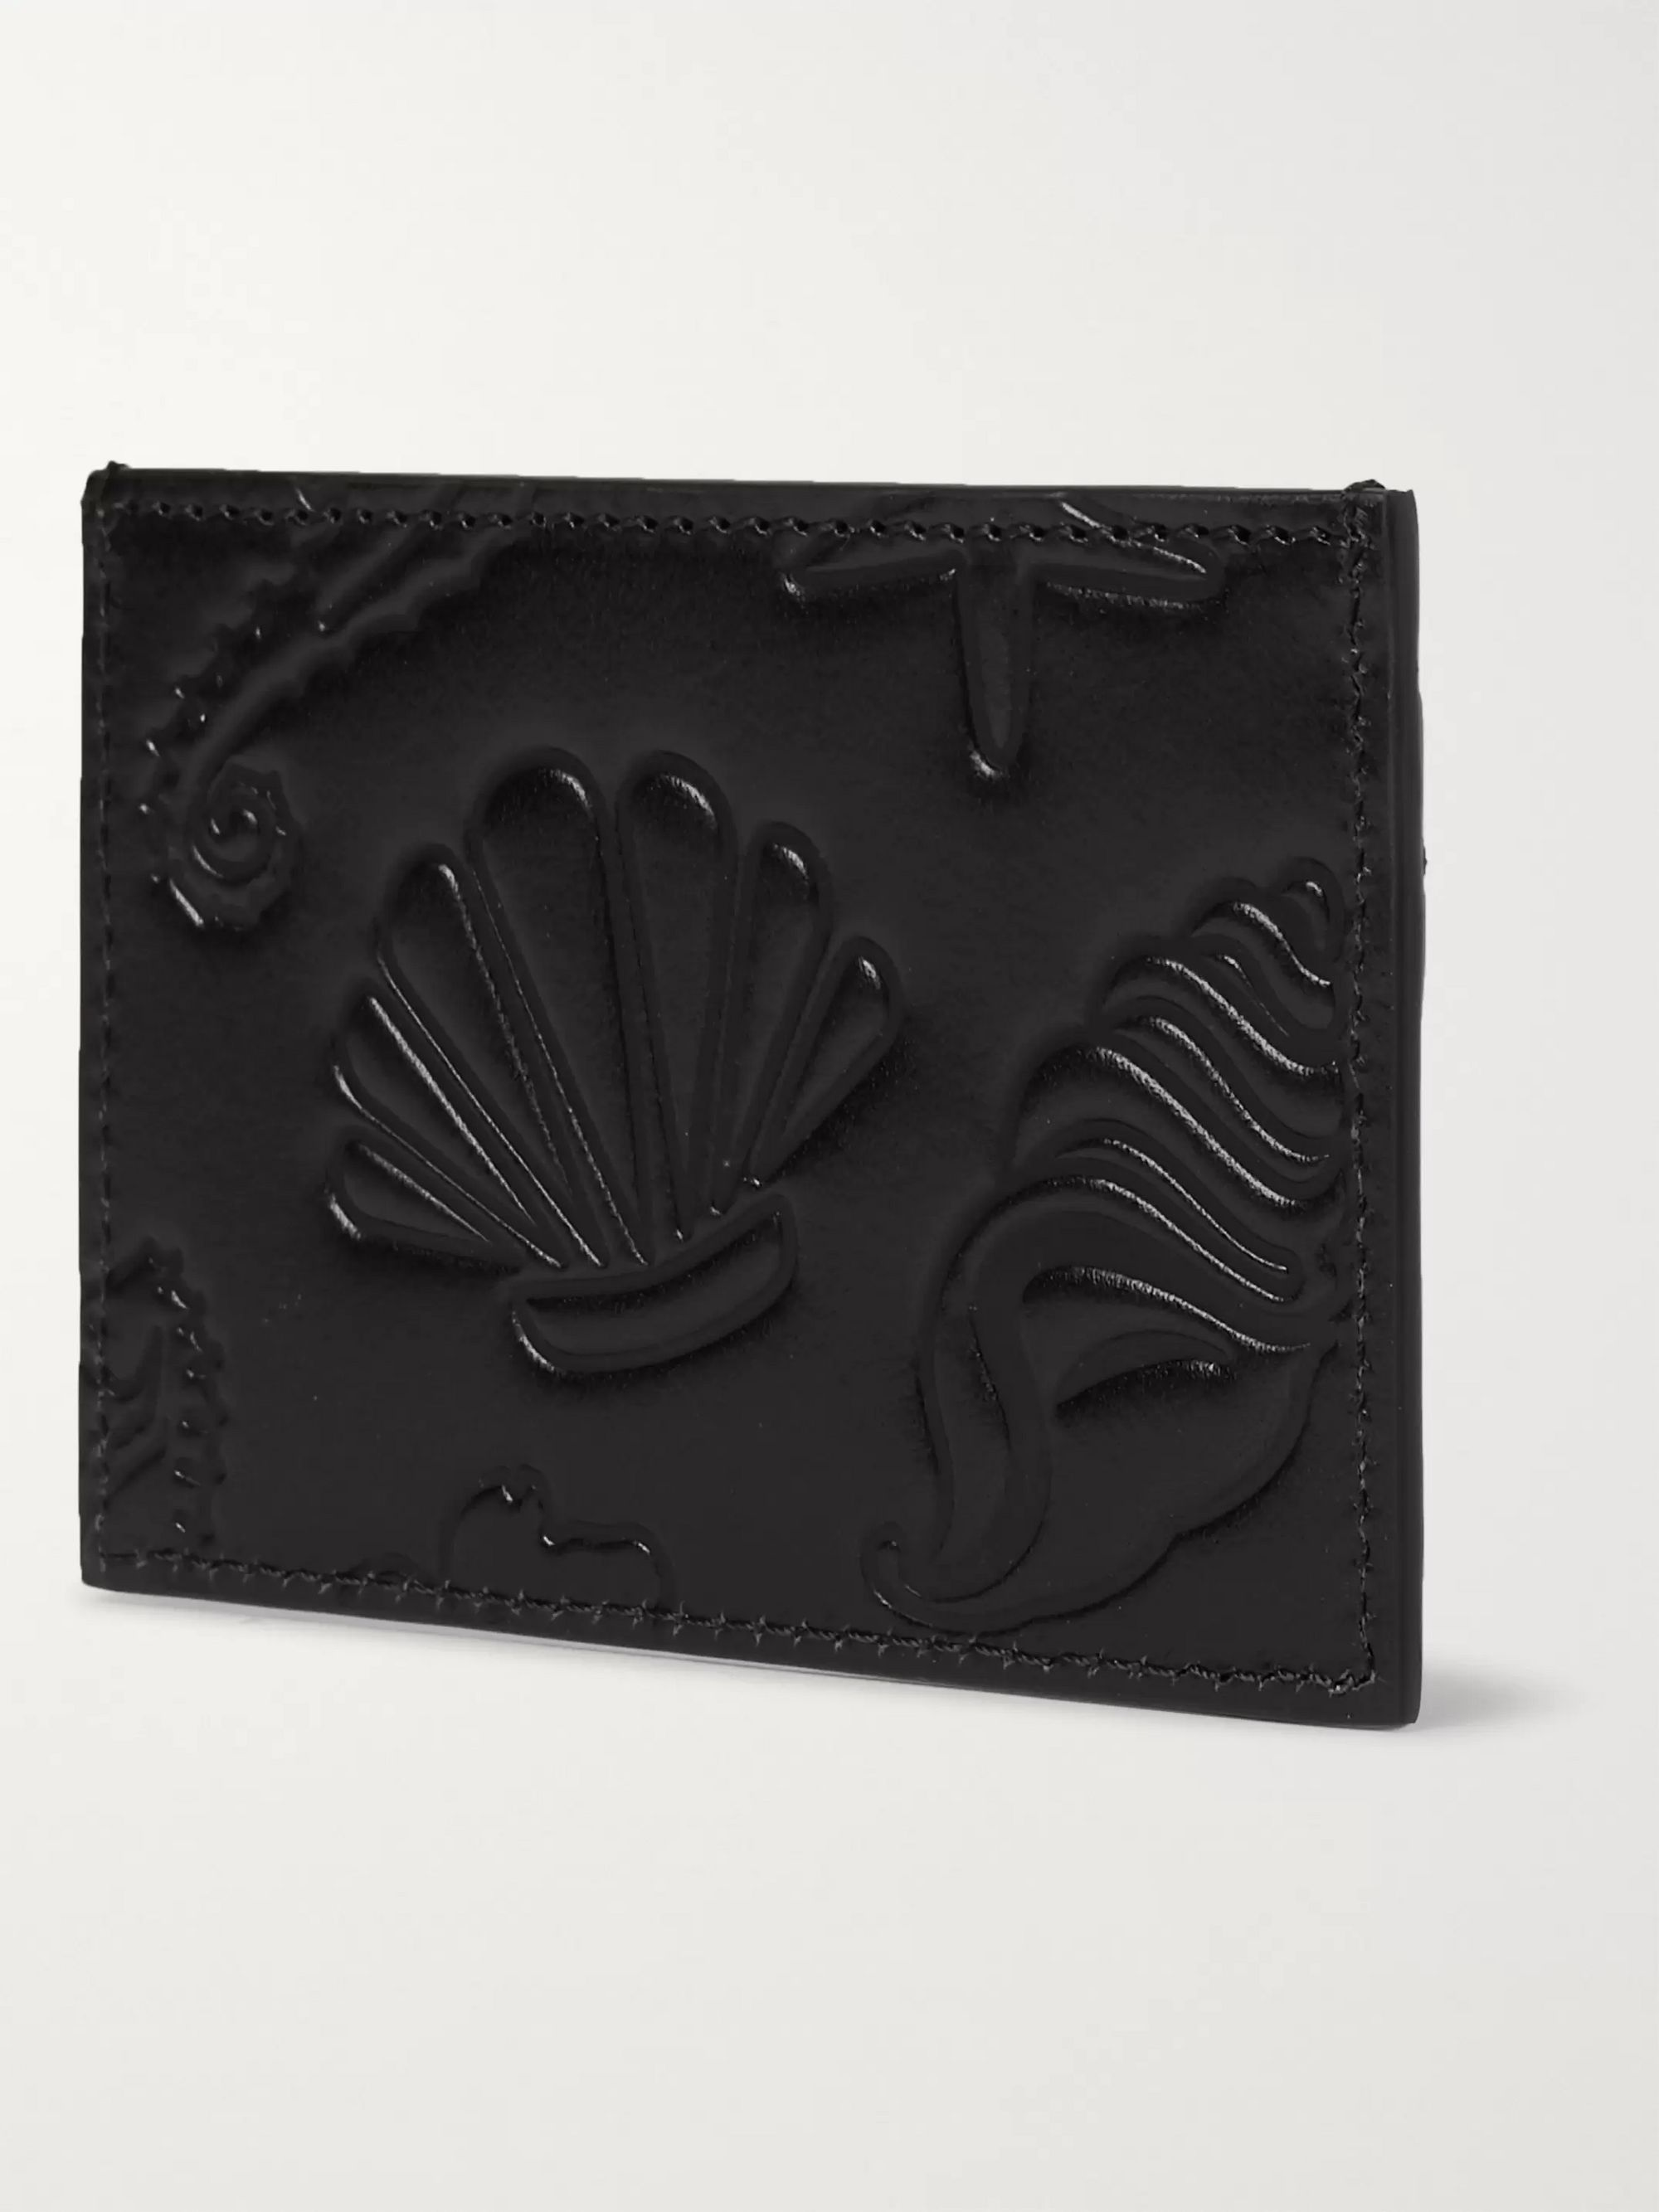 Thom Browne Embossed Leather Cardholder